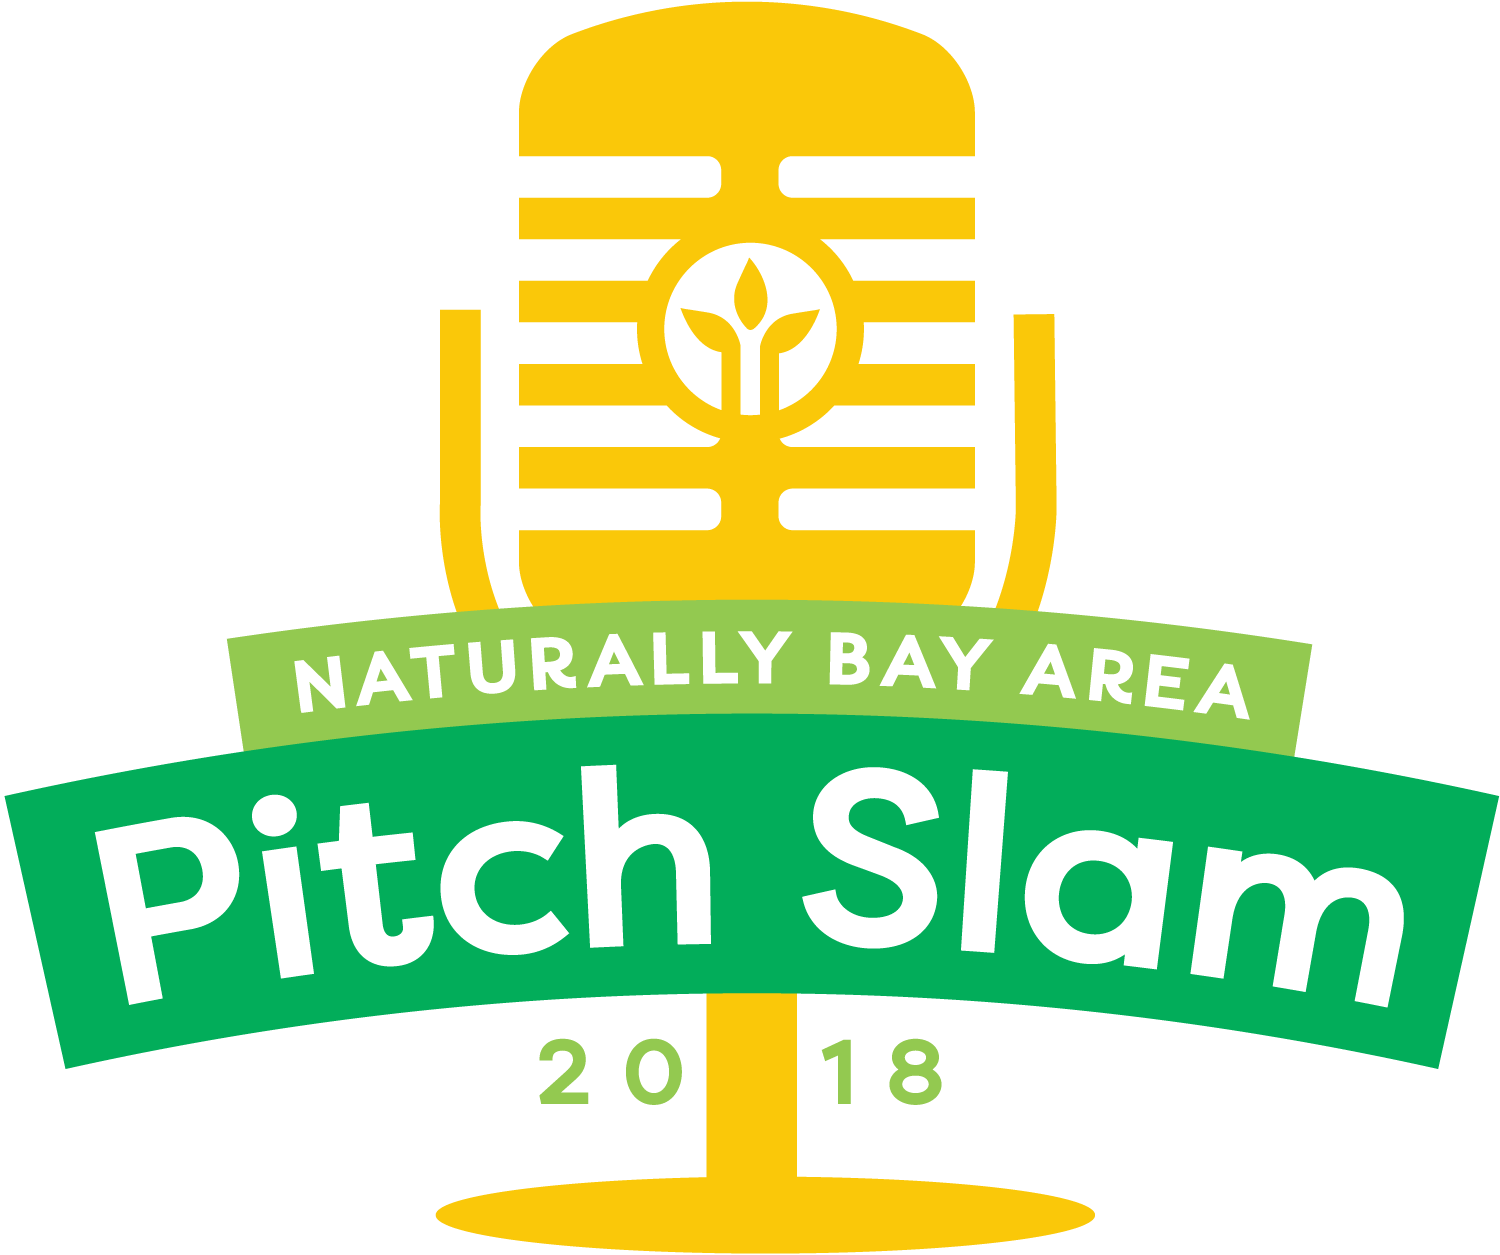 1ST ANNUAL PITCH SLAM | Naturally Bay Area